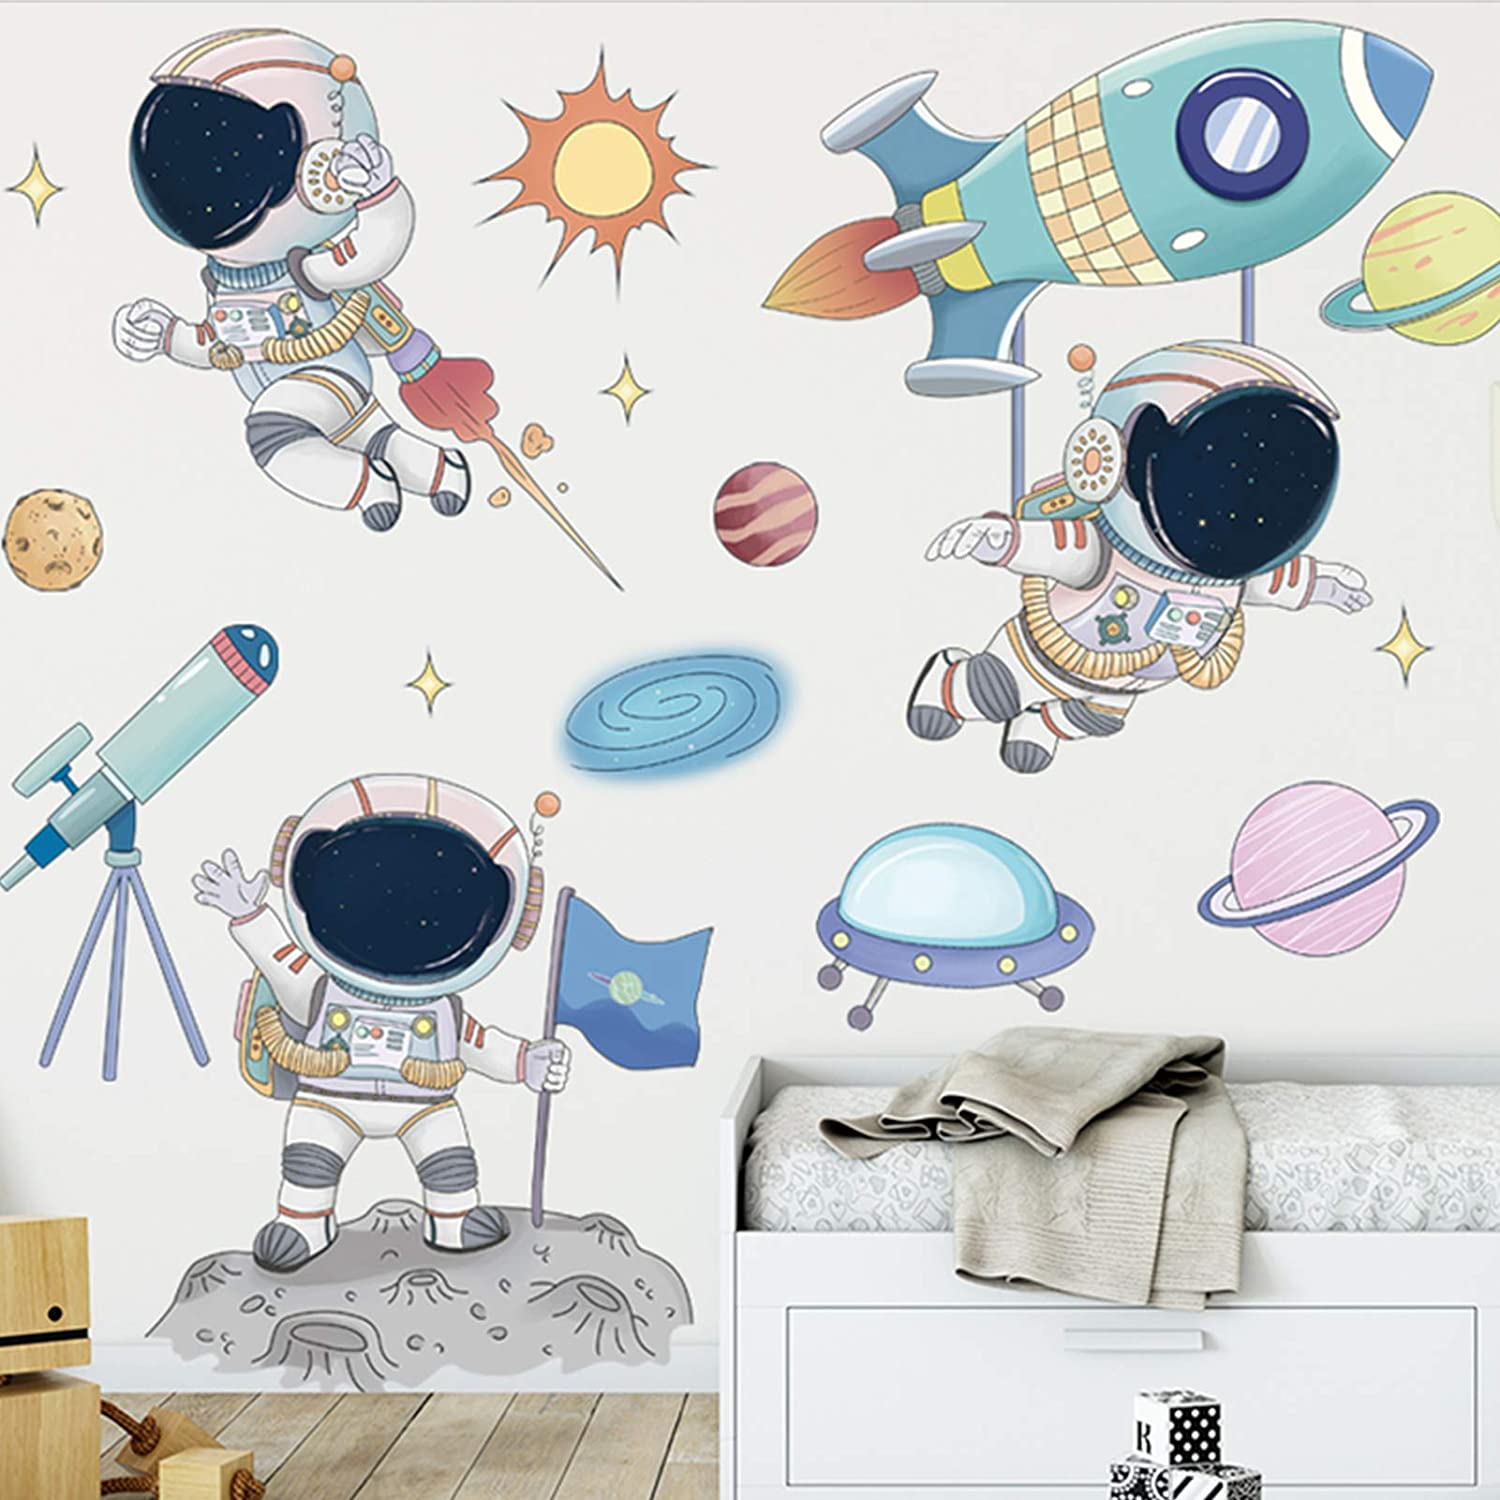 Astronaut Wall Stickers, DILIBRA Planet Space Walk Spaceship DIY Art Vinyl Removable Murals Wall Decals, Cartoon Spaceman Cosmonaut Art Decorations for Kids Boys Bedroom Playing Room (Astronaut4)